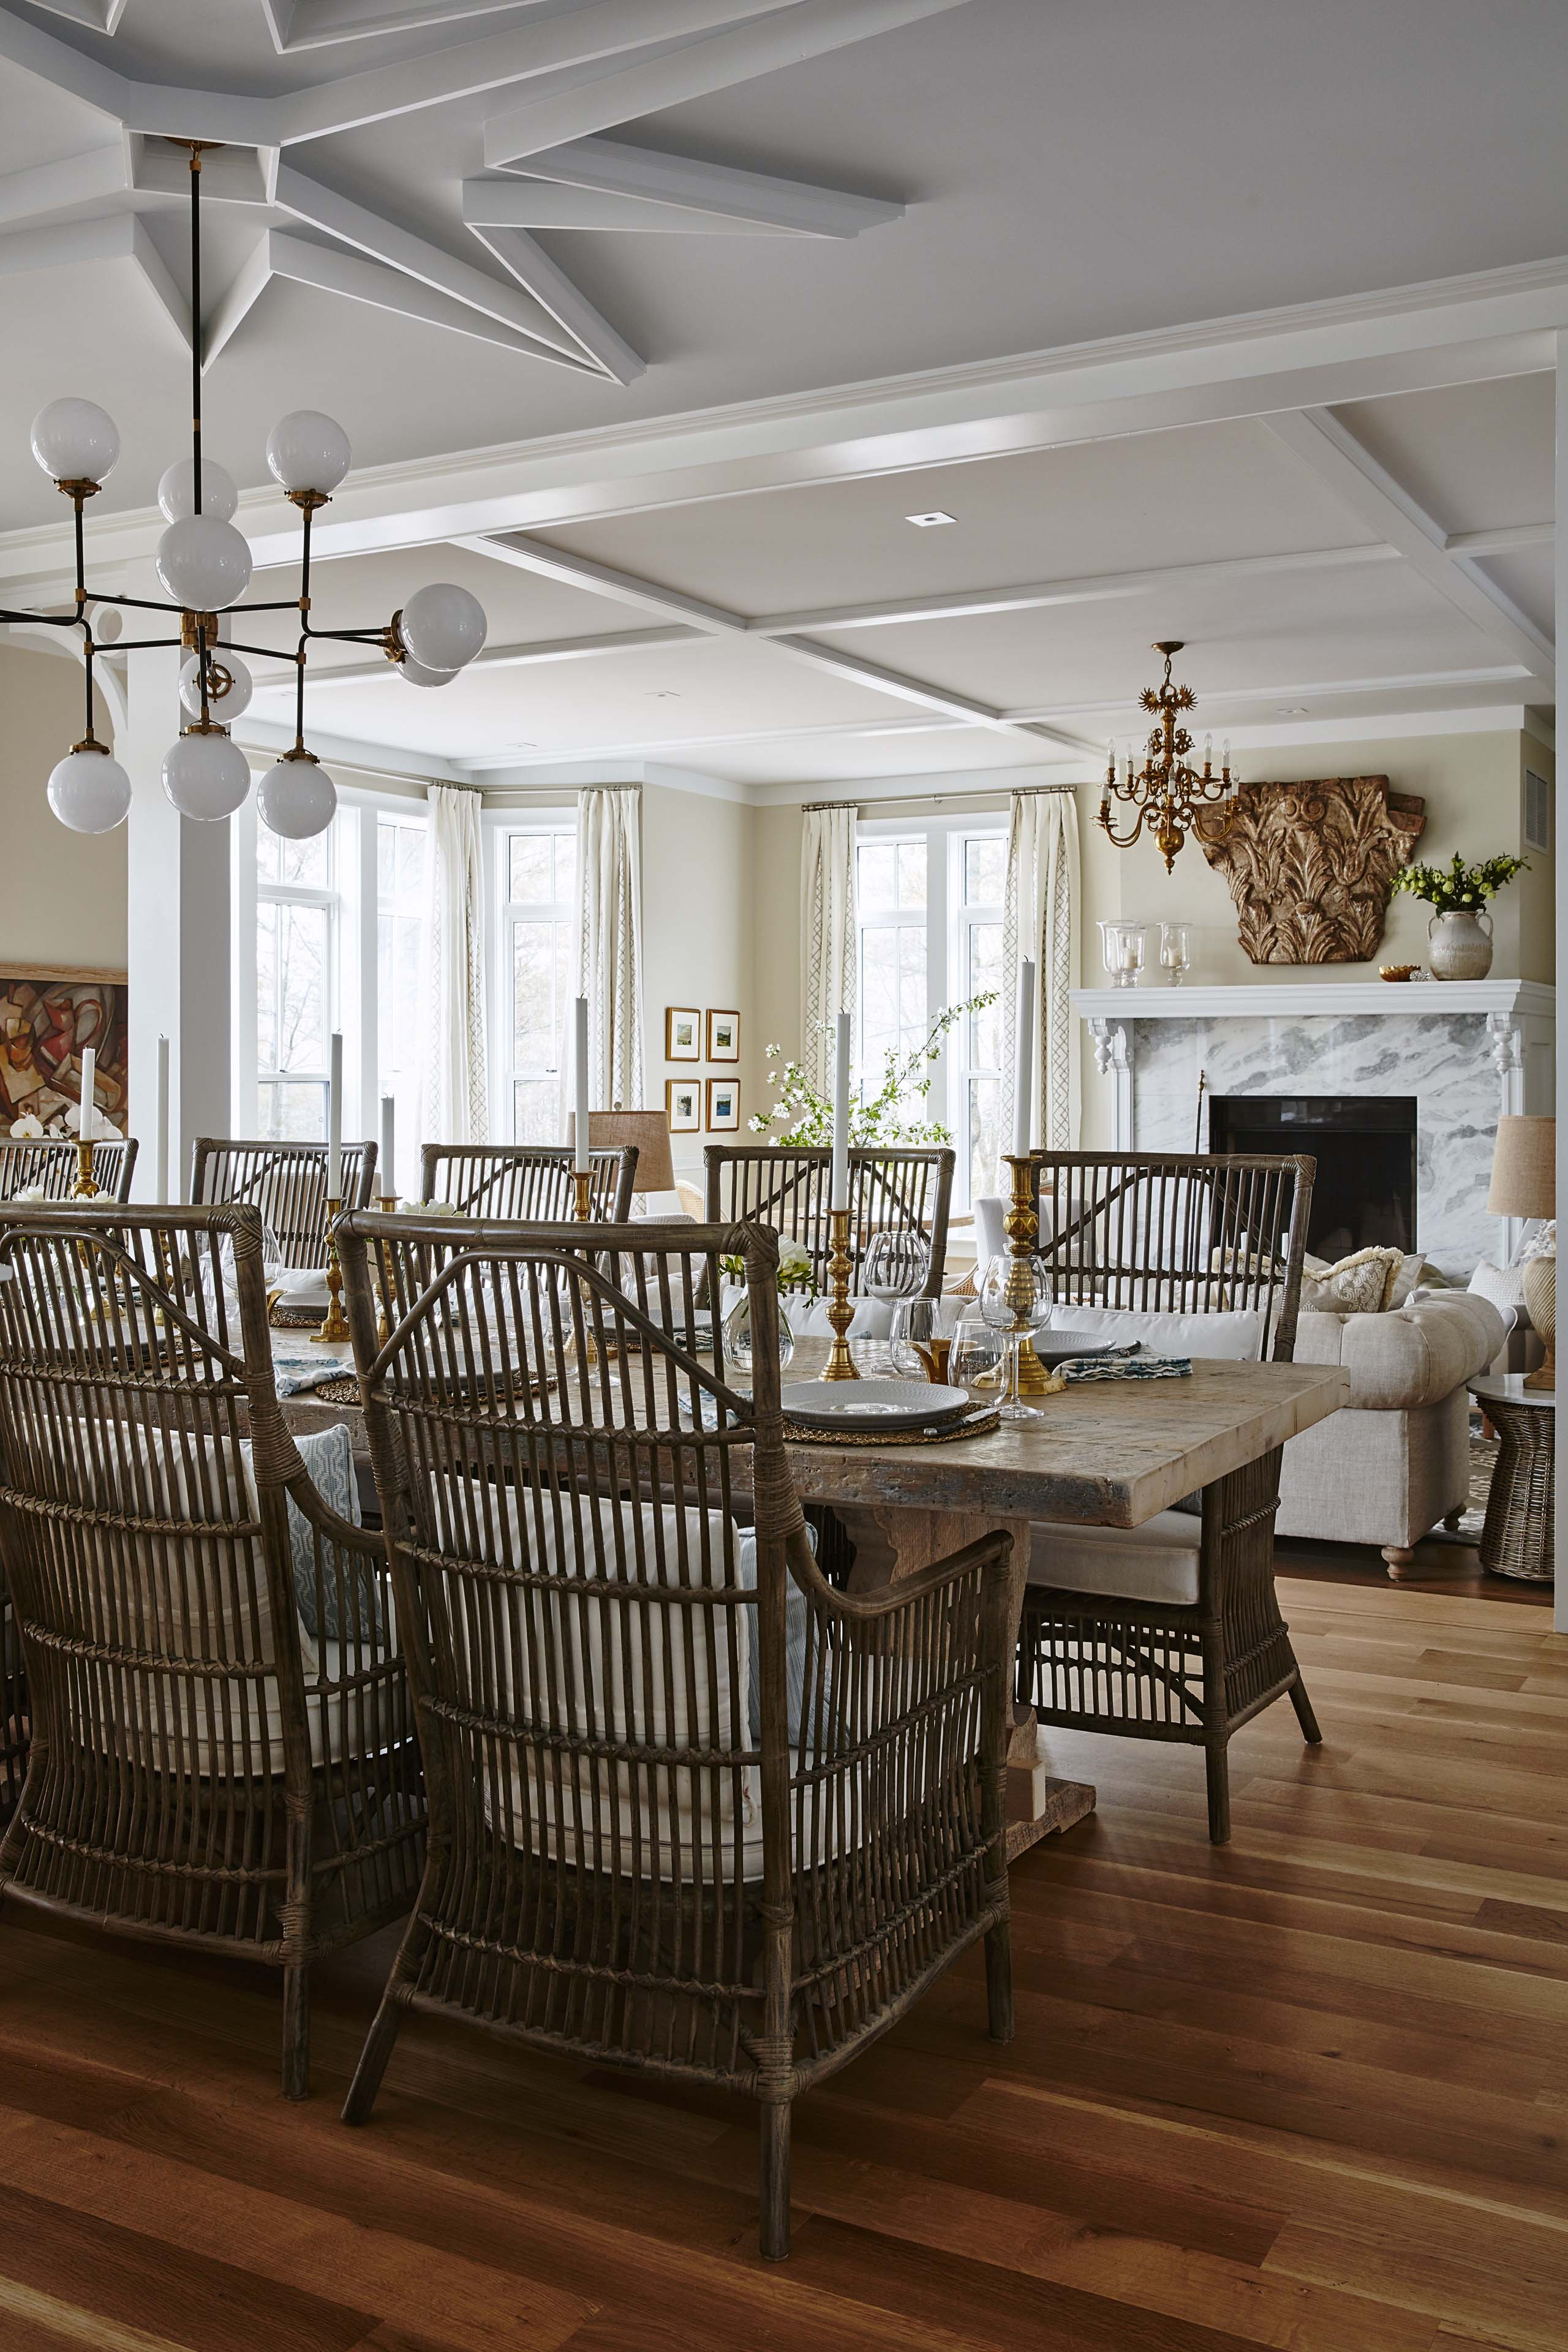 #SarahRichardson designed dining room with #moderncountry decor in her own home. Shop the Room! Sarah Richardson's Ontario Living Room